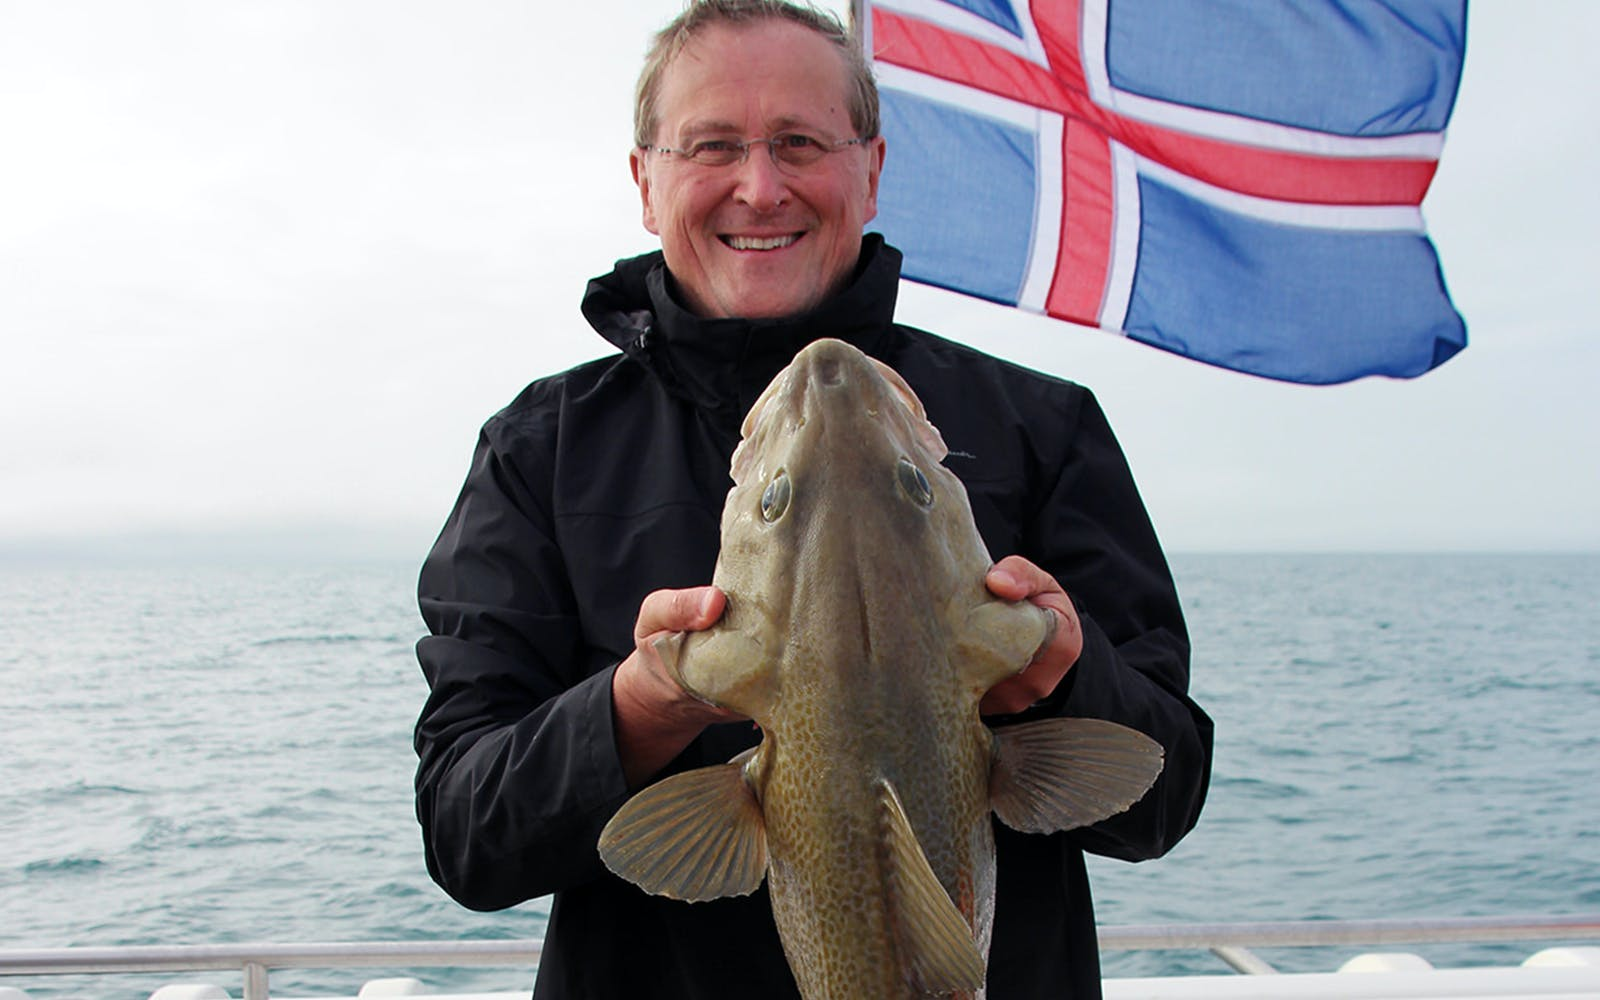 sea angling experience off the reykjavik coast-1